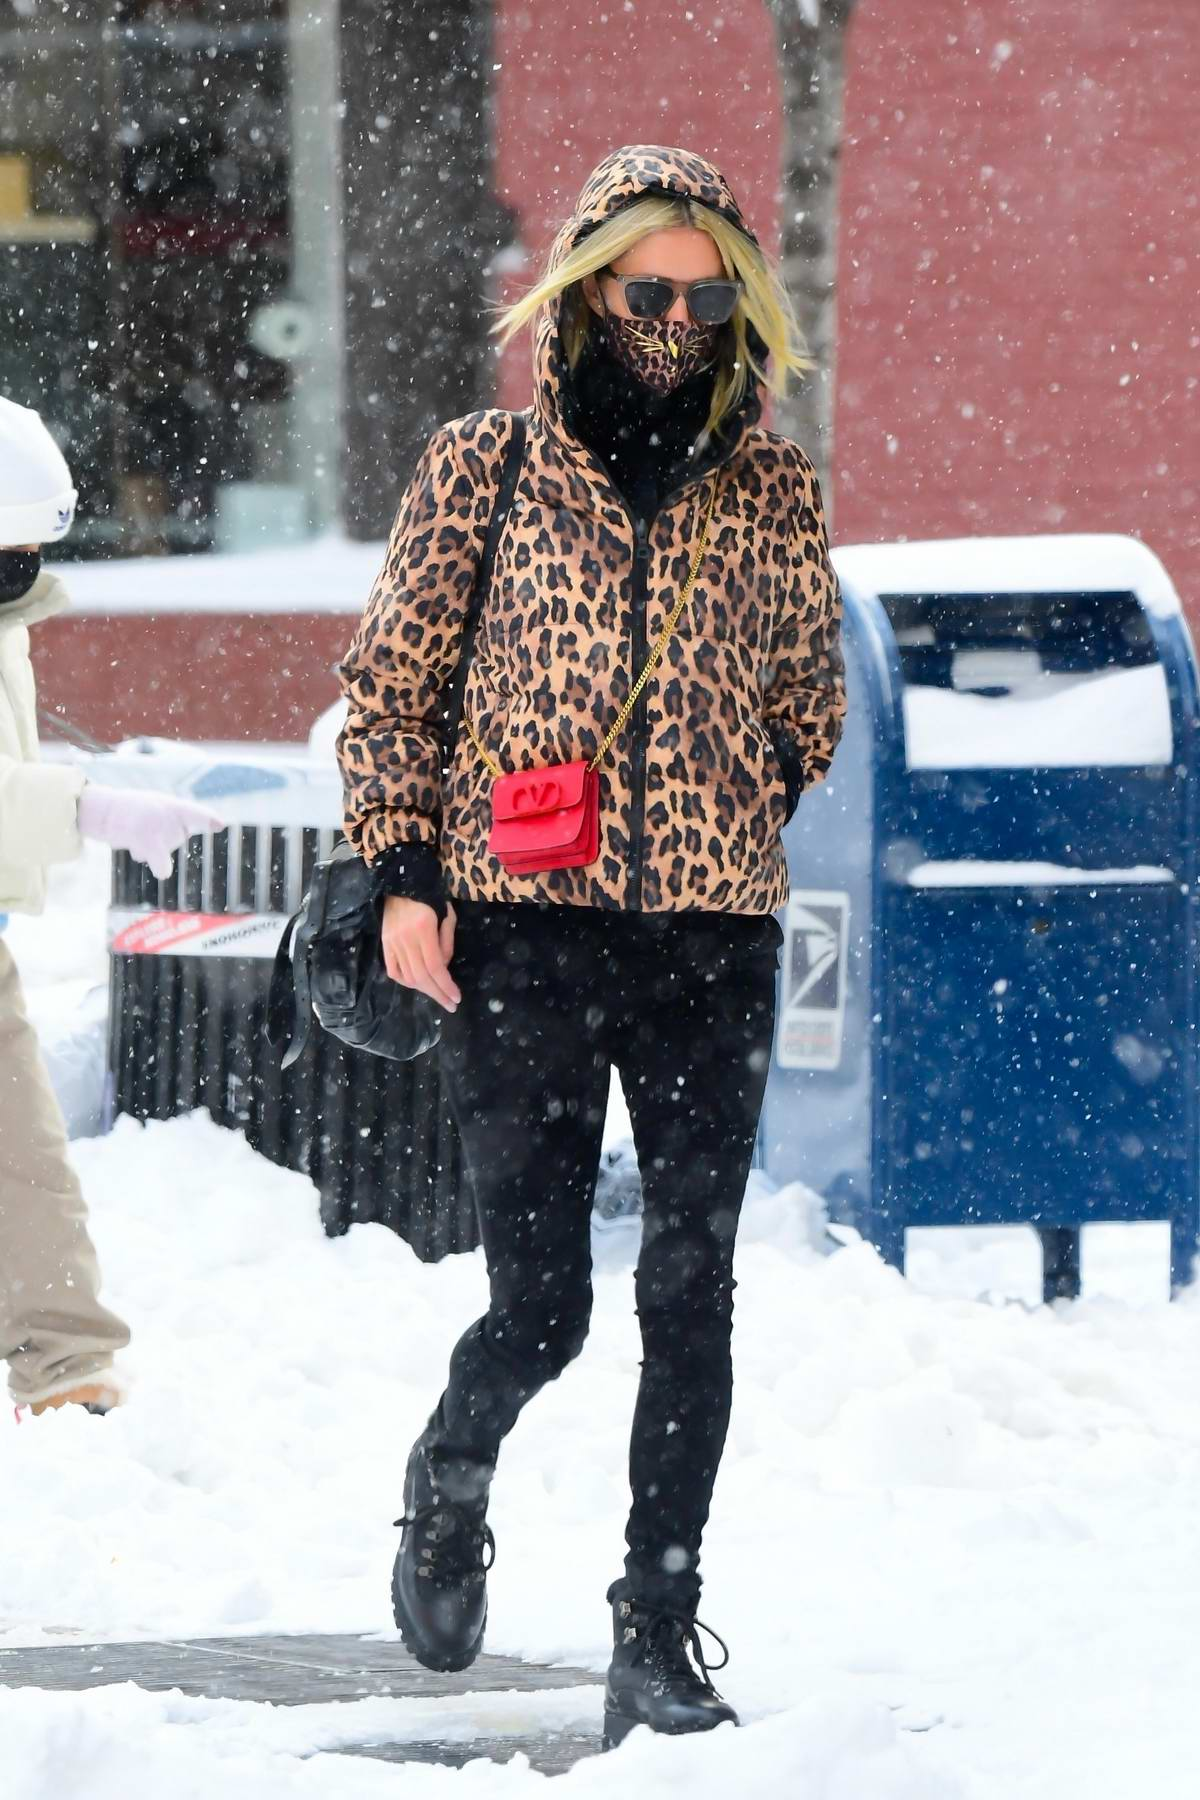 Nicky Hilton wears a leopard print hooded jacket as she steps out on a snowy day in New York City